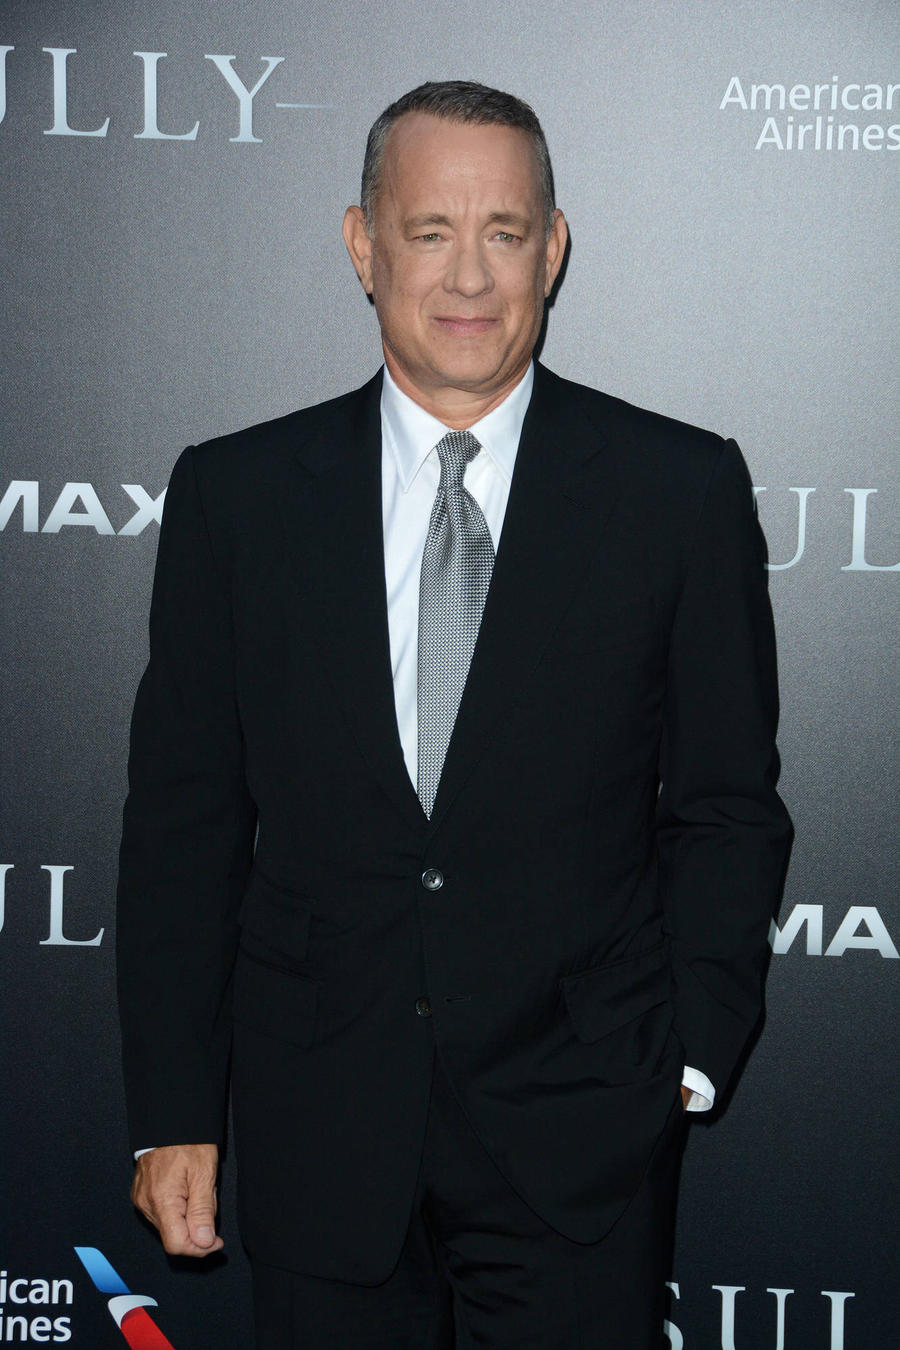 Tom Hanks' Movie Sully Upsets Real-life Aviation Investigators